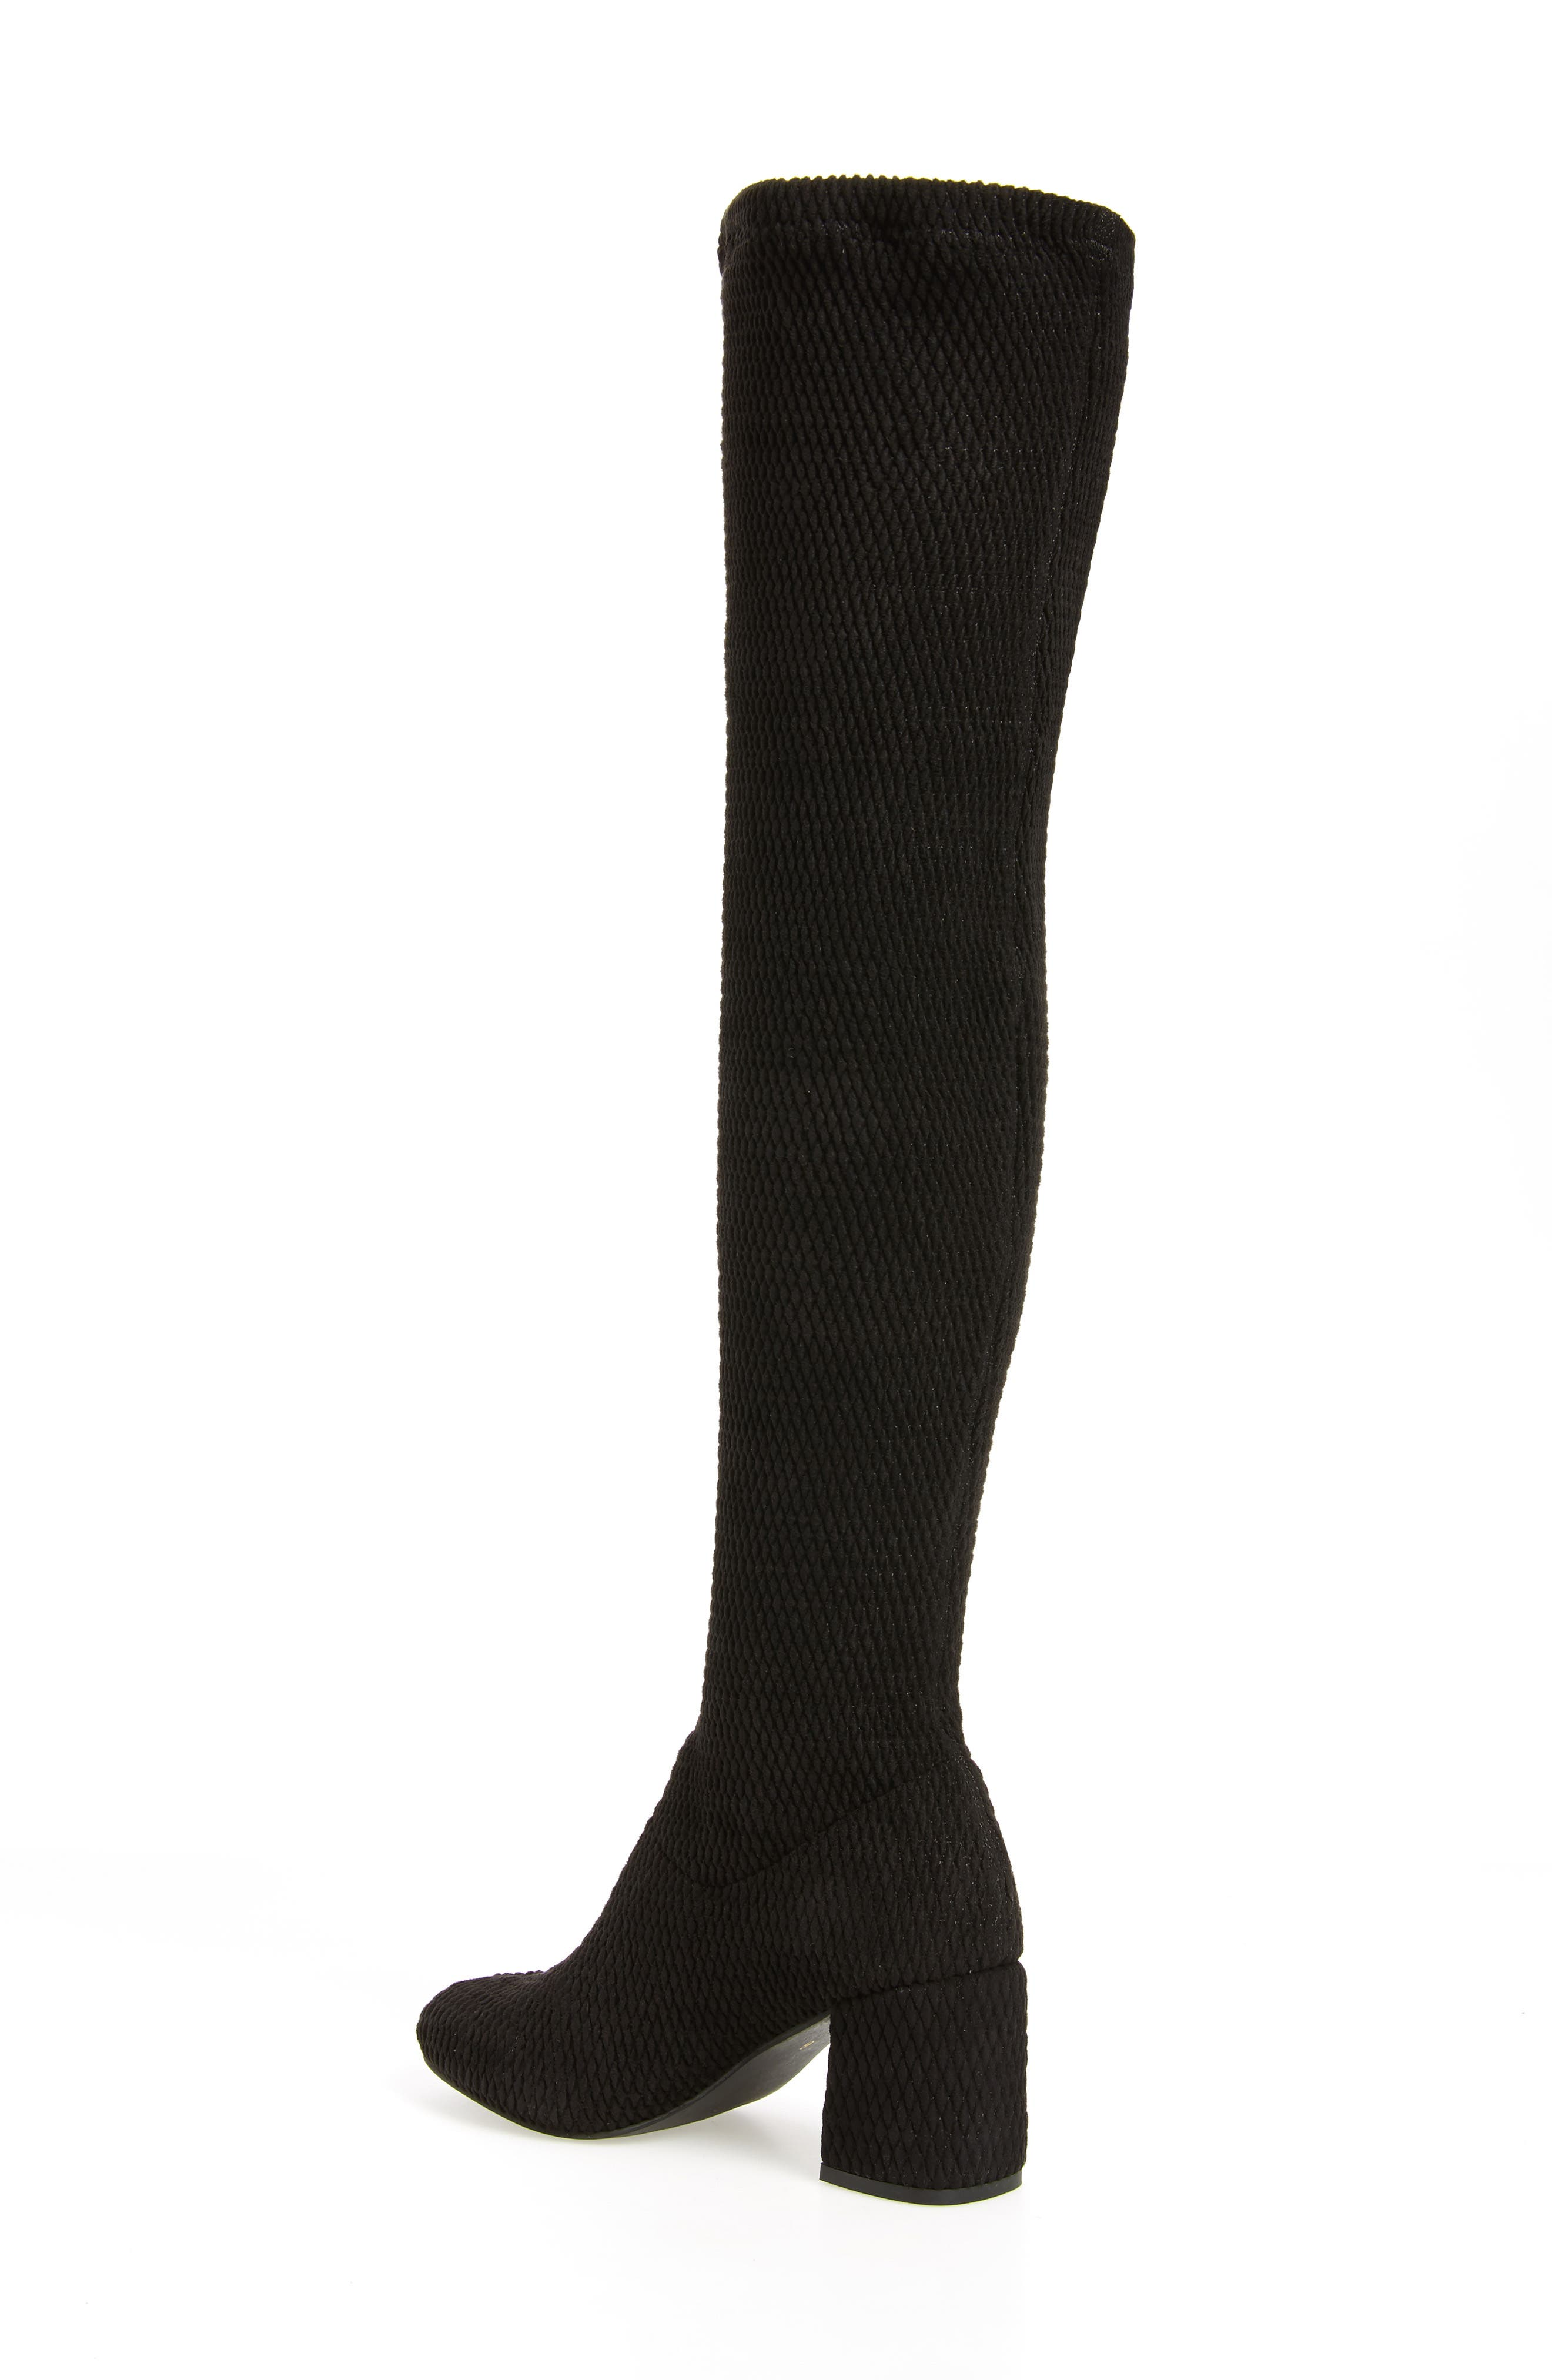 Alternate Image 2  - Seychelles Act One Stretch Over the Knee Boot (Women)